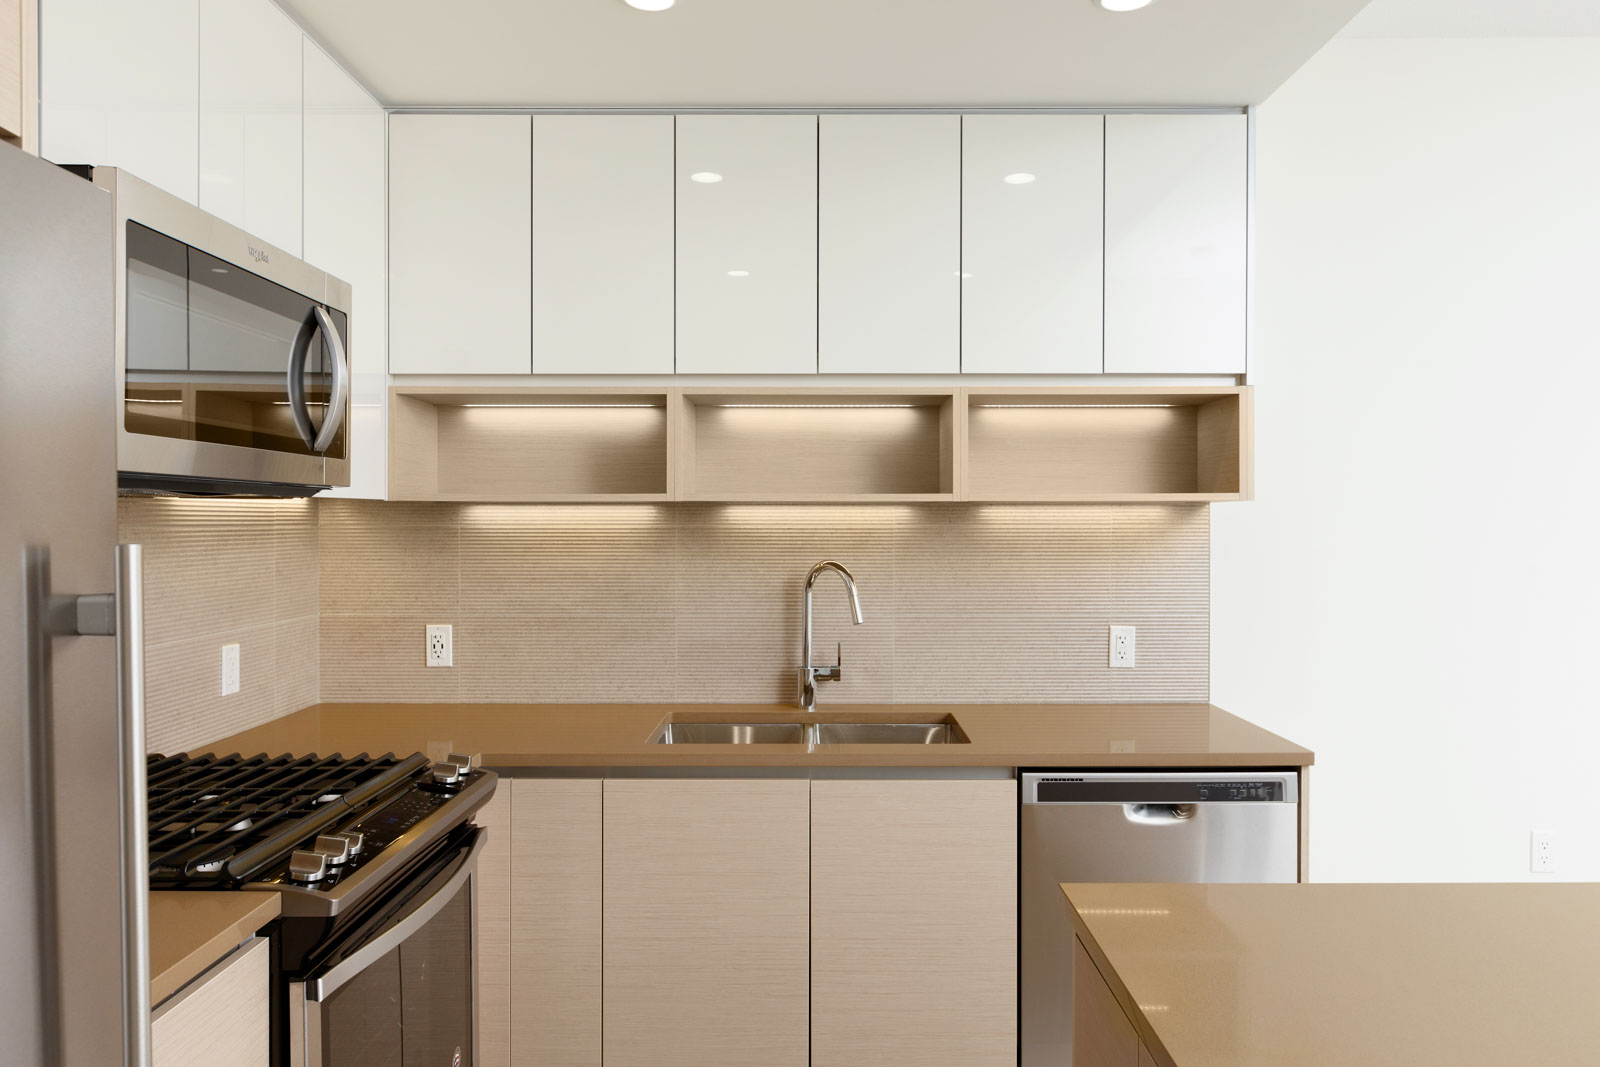 Newly renovated kitchen in Burnaby Mountain rental condo.